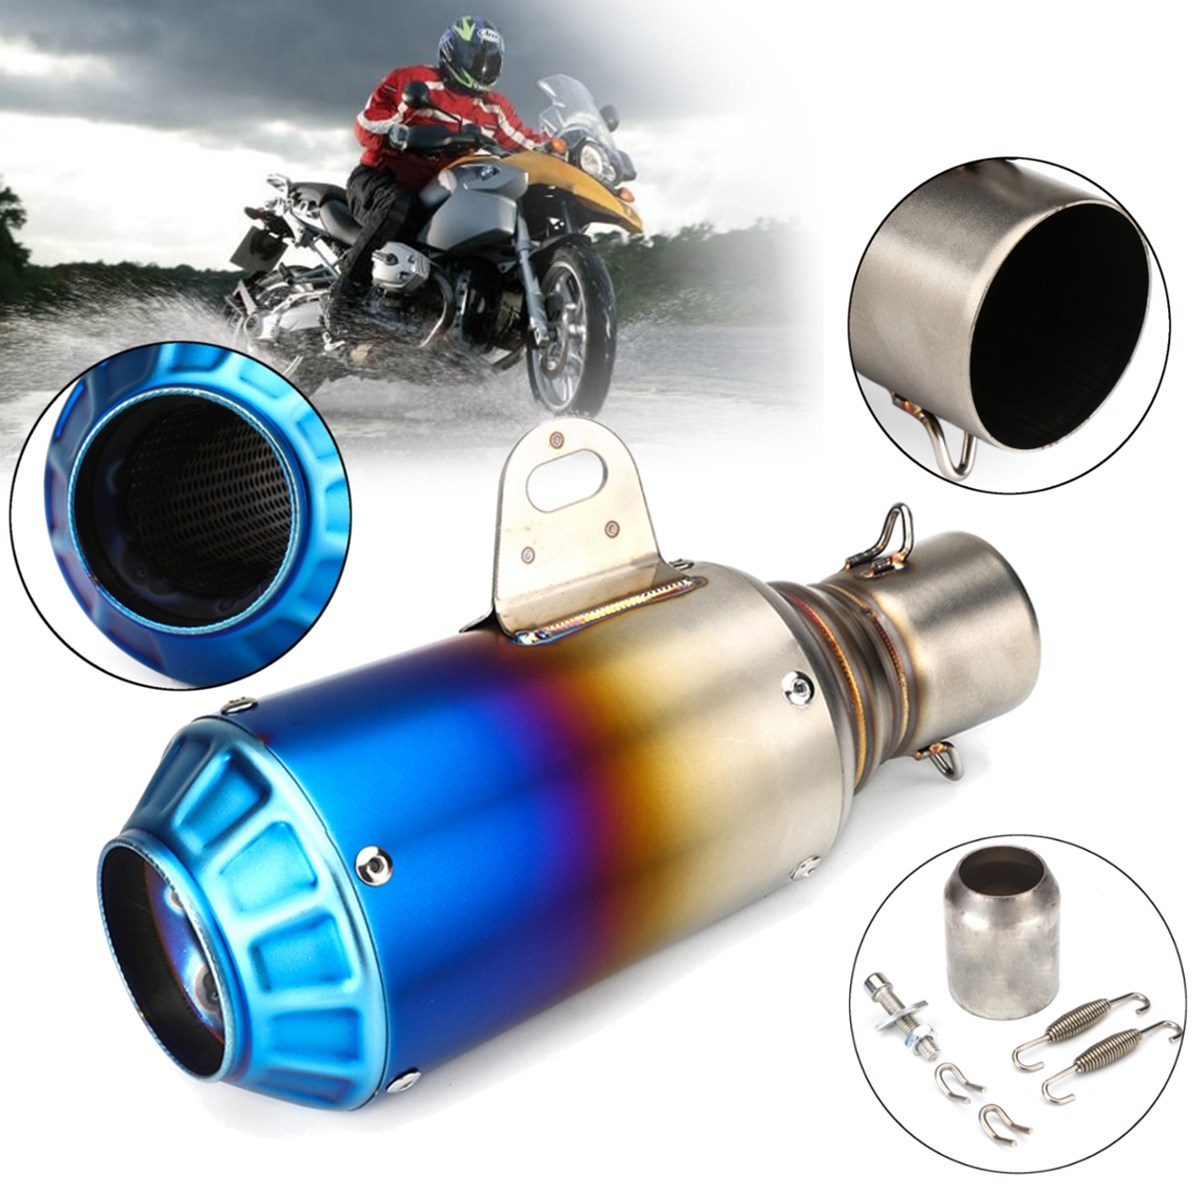 38-51mm Stainless Steel Universal Motorcycle Exhaust Pipe System Modified Outlet Without Muffler Dirt Street Bike Scooter ATV